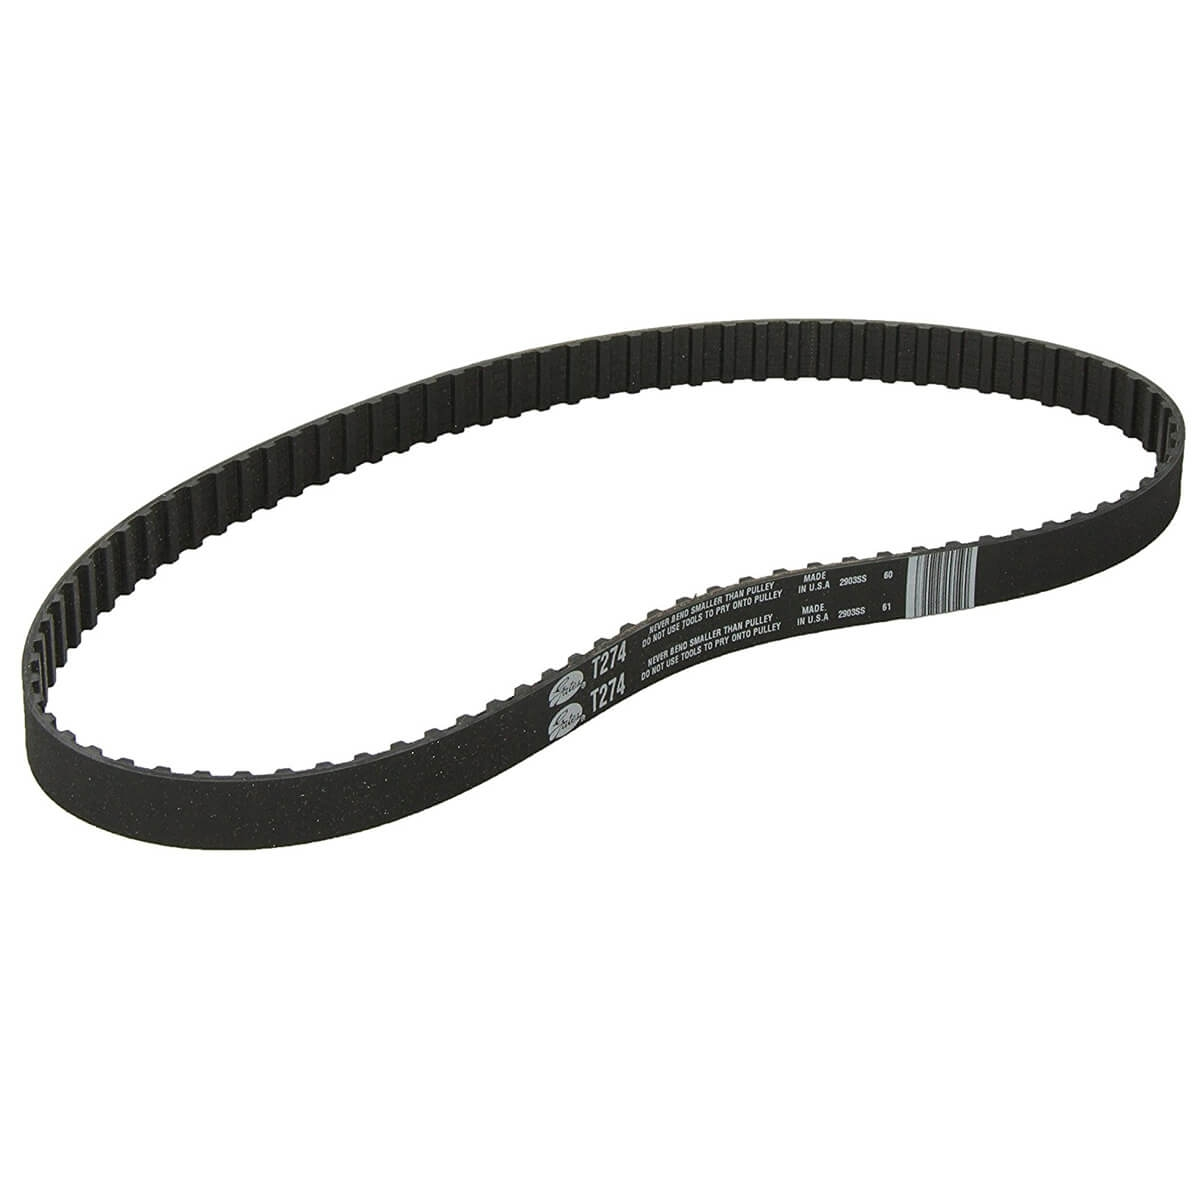 DACIA DUSTER Timing Belt